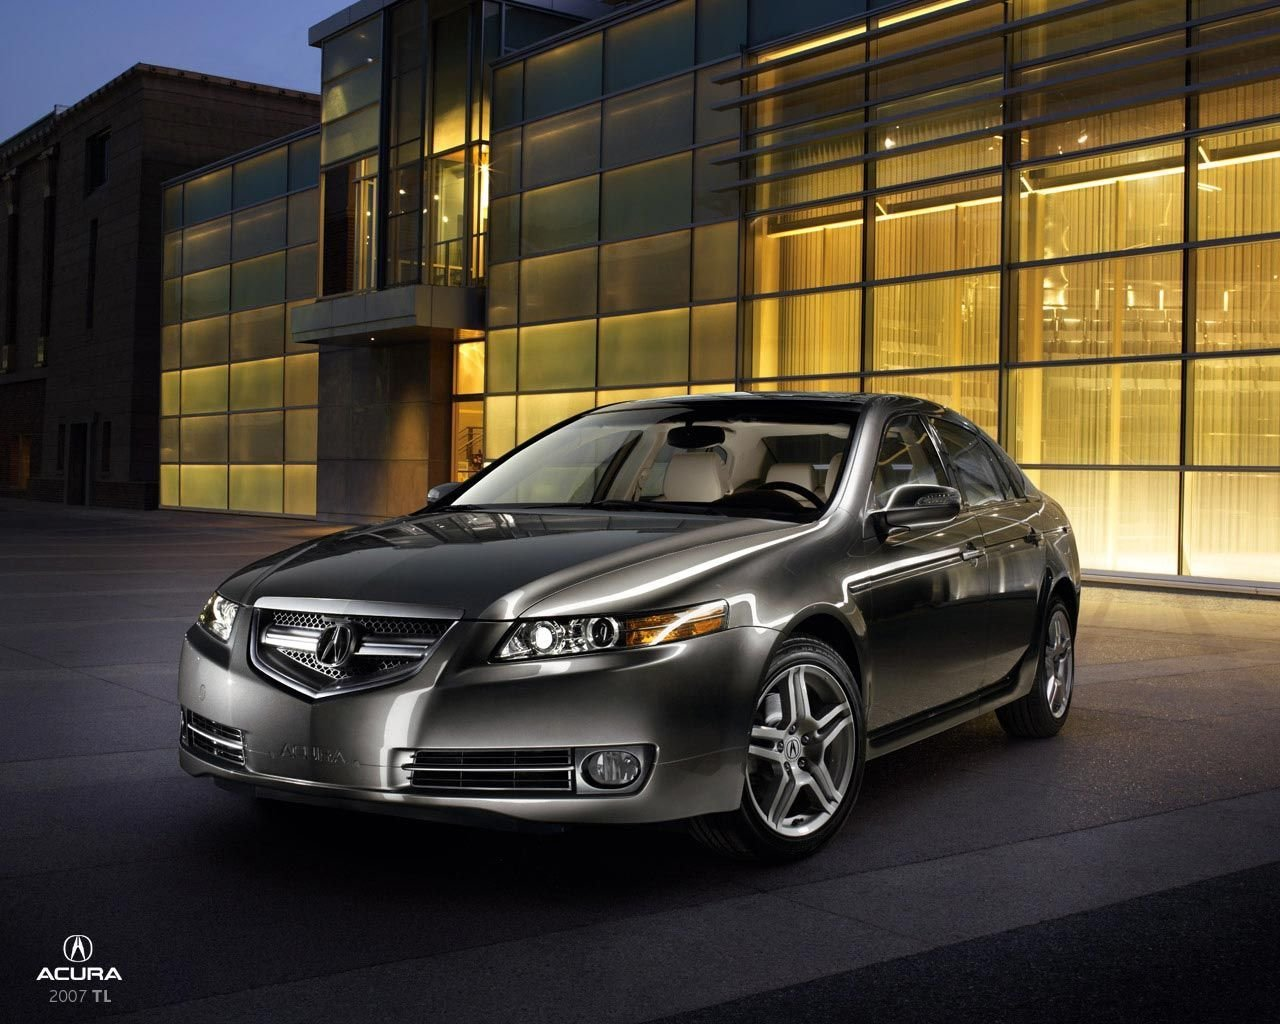 Latest Free Download Acura Tl Wallpapers 184 Post At December 6 Free Download